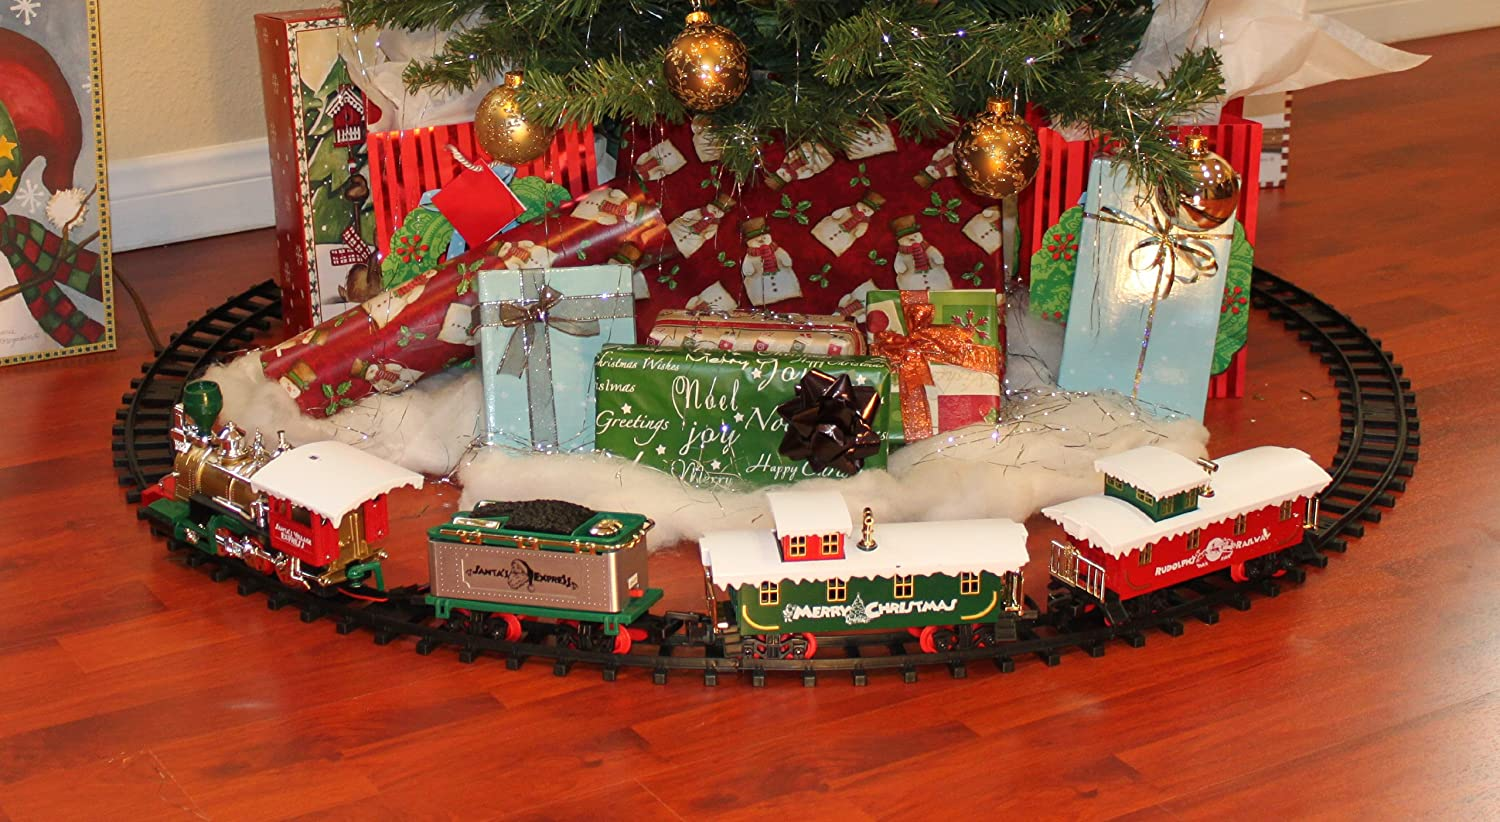 Amazon.com: Toystate Santa's Village Express Holiday Christmas ...